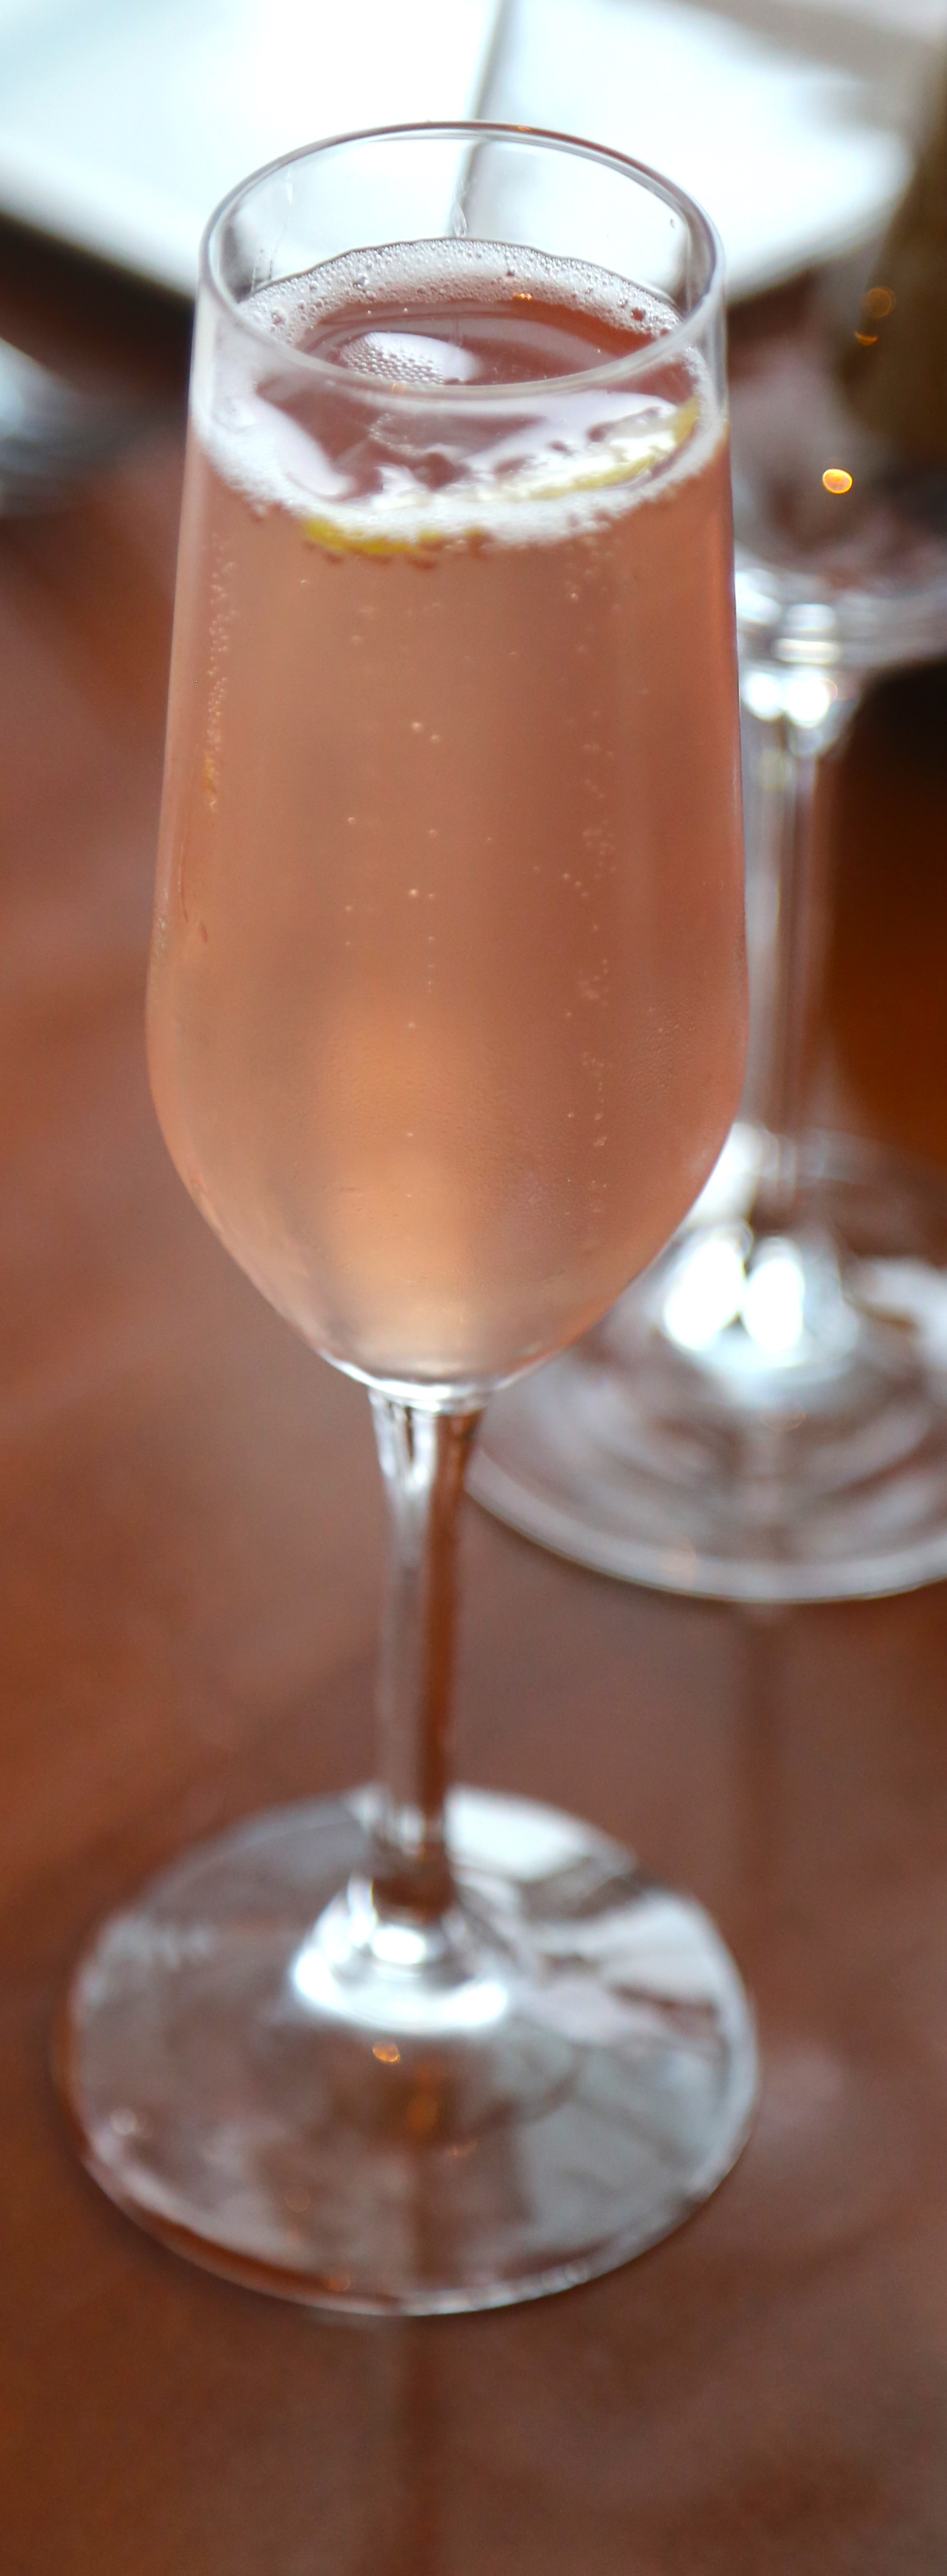 guests were greeted with a honey infused champagne cocktail - Coloration Miel Dor